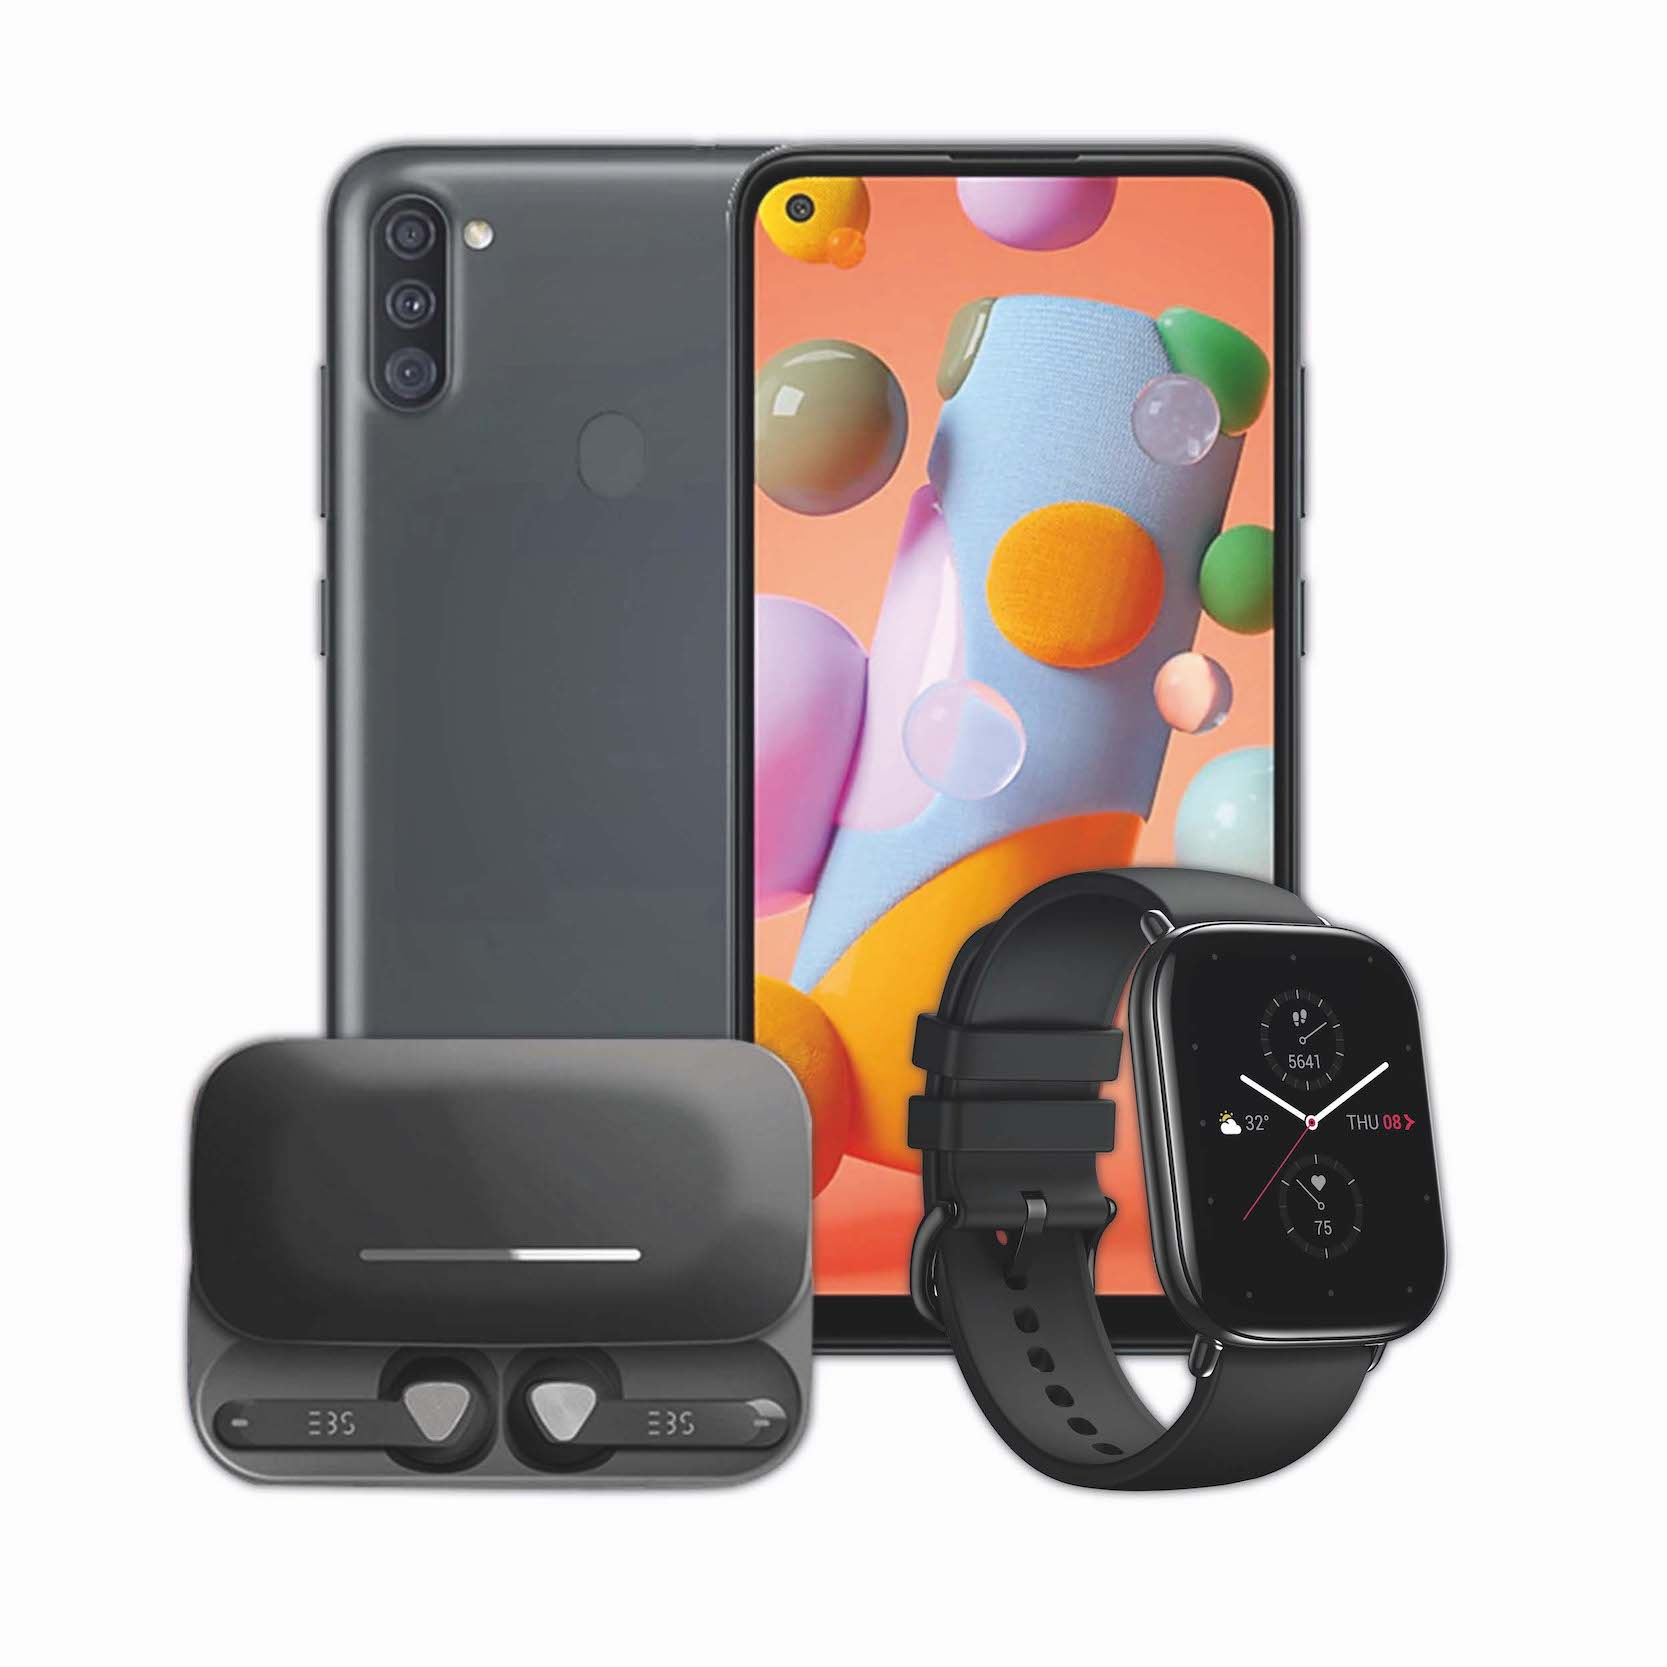 Samsung Galaxy A11 + EBS Earpods + Smart Watch